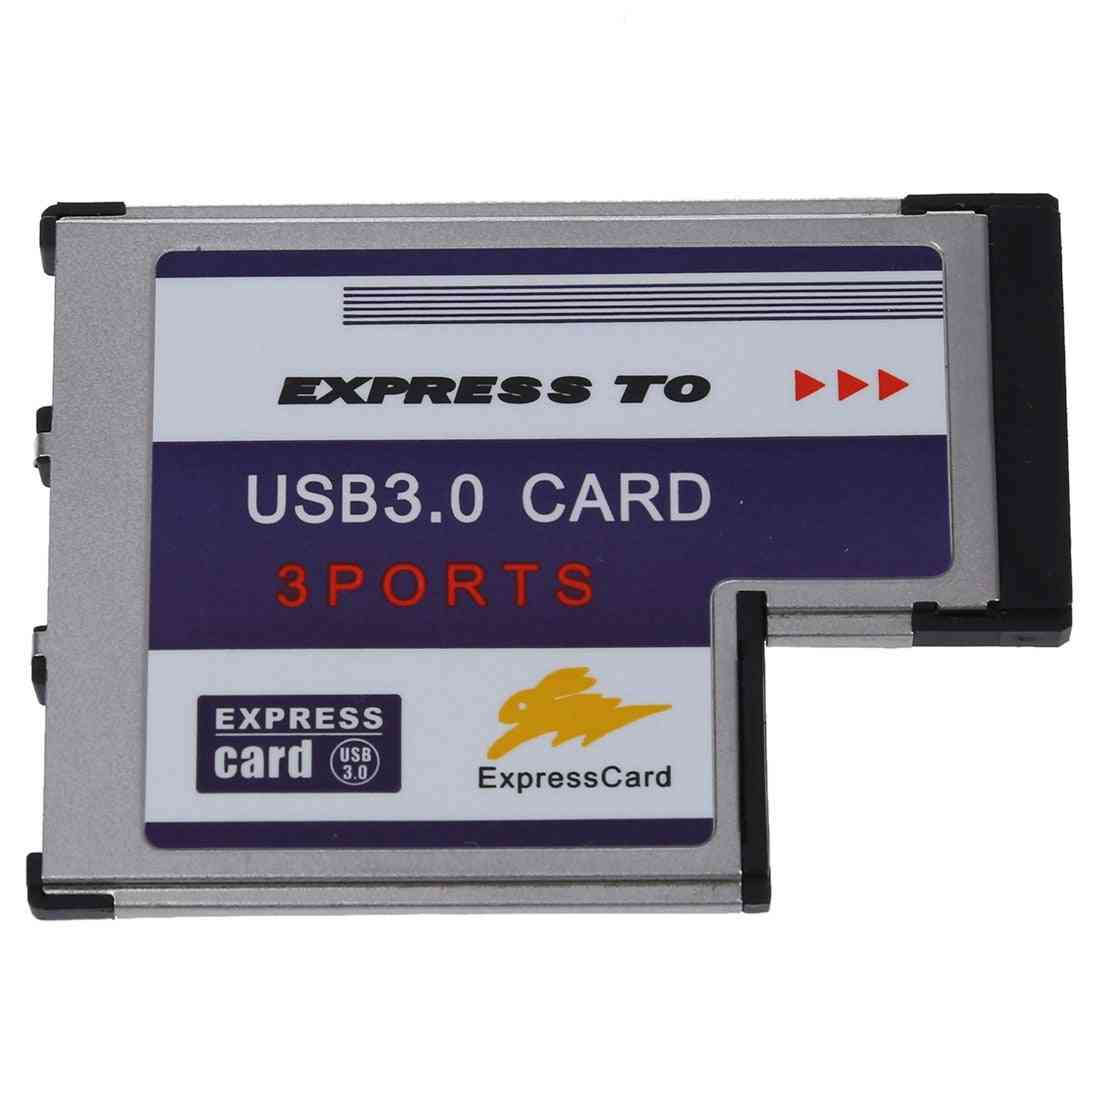 3 Port Usb 3.0 Express Card 54mm Pcmcia For Laptop